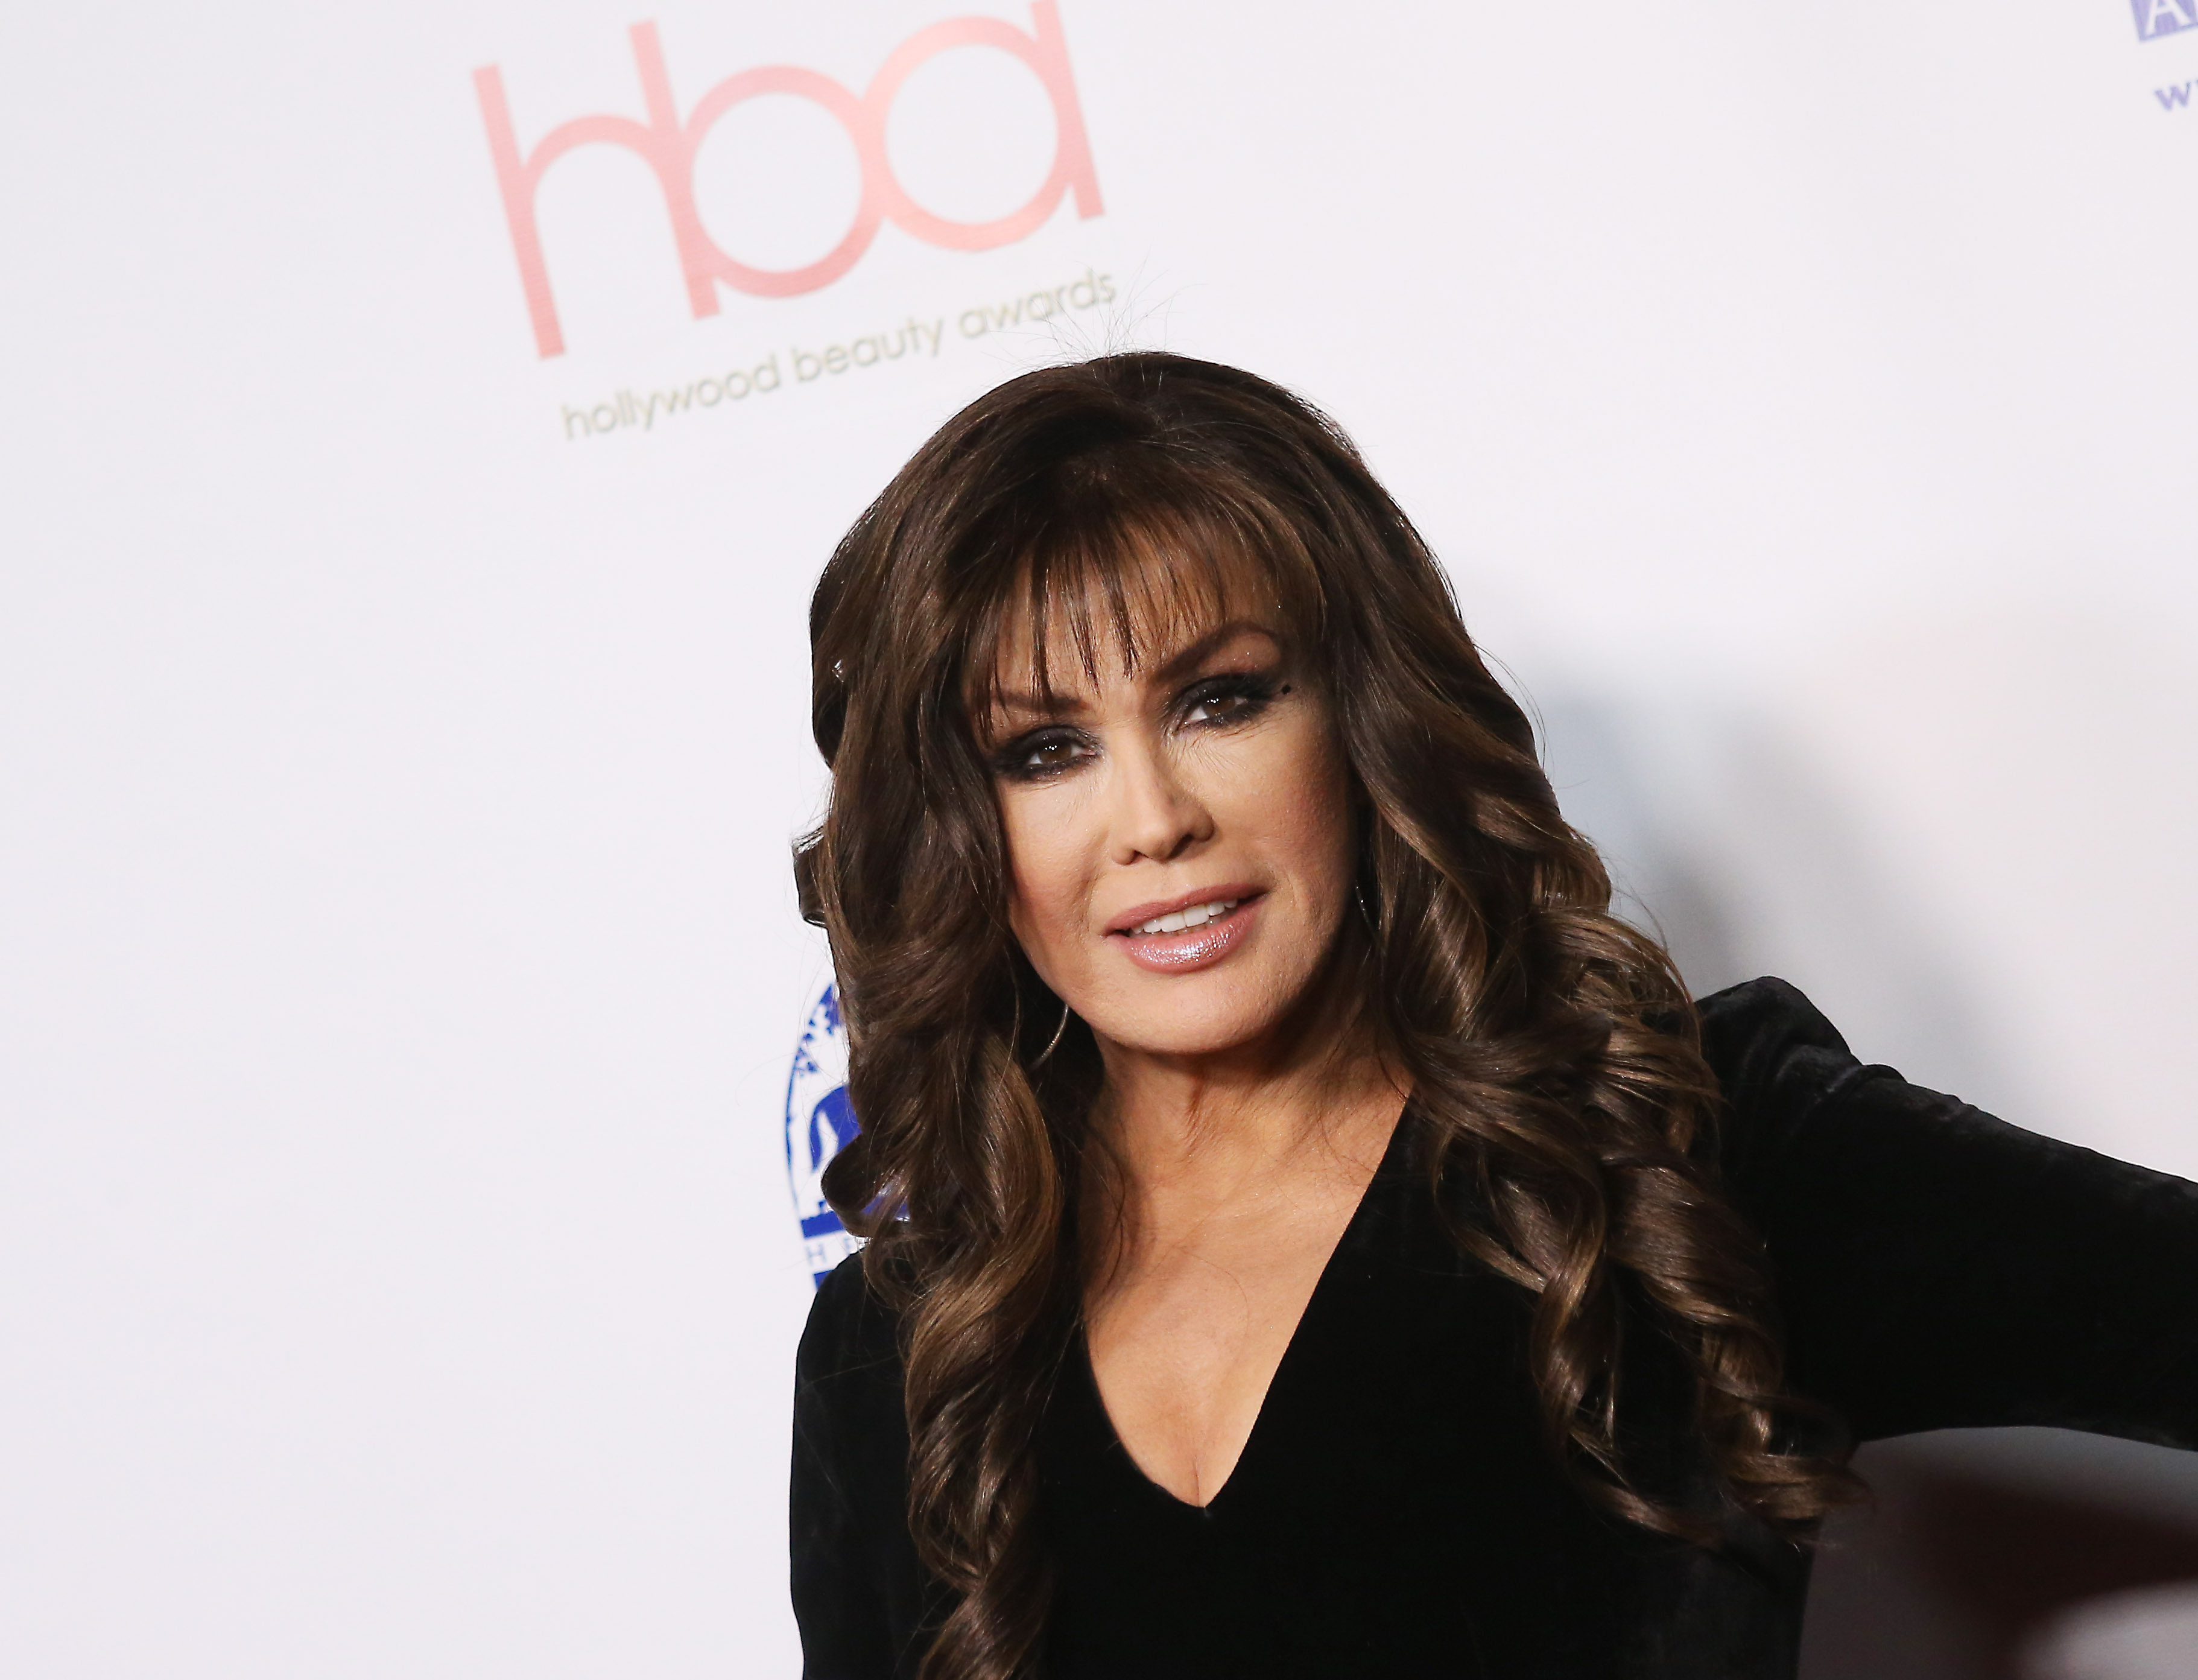 Westlake Legal Group GettyImages-1130412640 Marie Osmond recalls the 'ripple effect' son Michael's suicide left on family nearly 10 years later New York Post Francesca Bacardi fox-news/entertainment/celebrity-news fnc/entertainment fnc cf55ebe3-b3ba-5c7f-b1cd-ee4f1a6a0b8f article